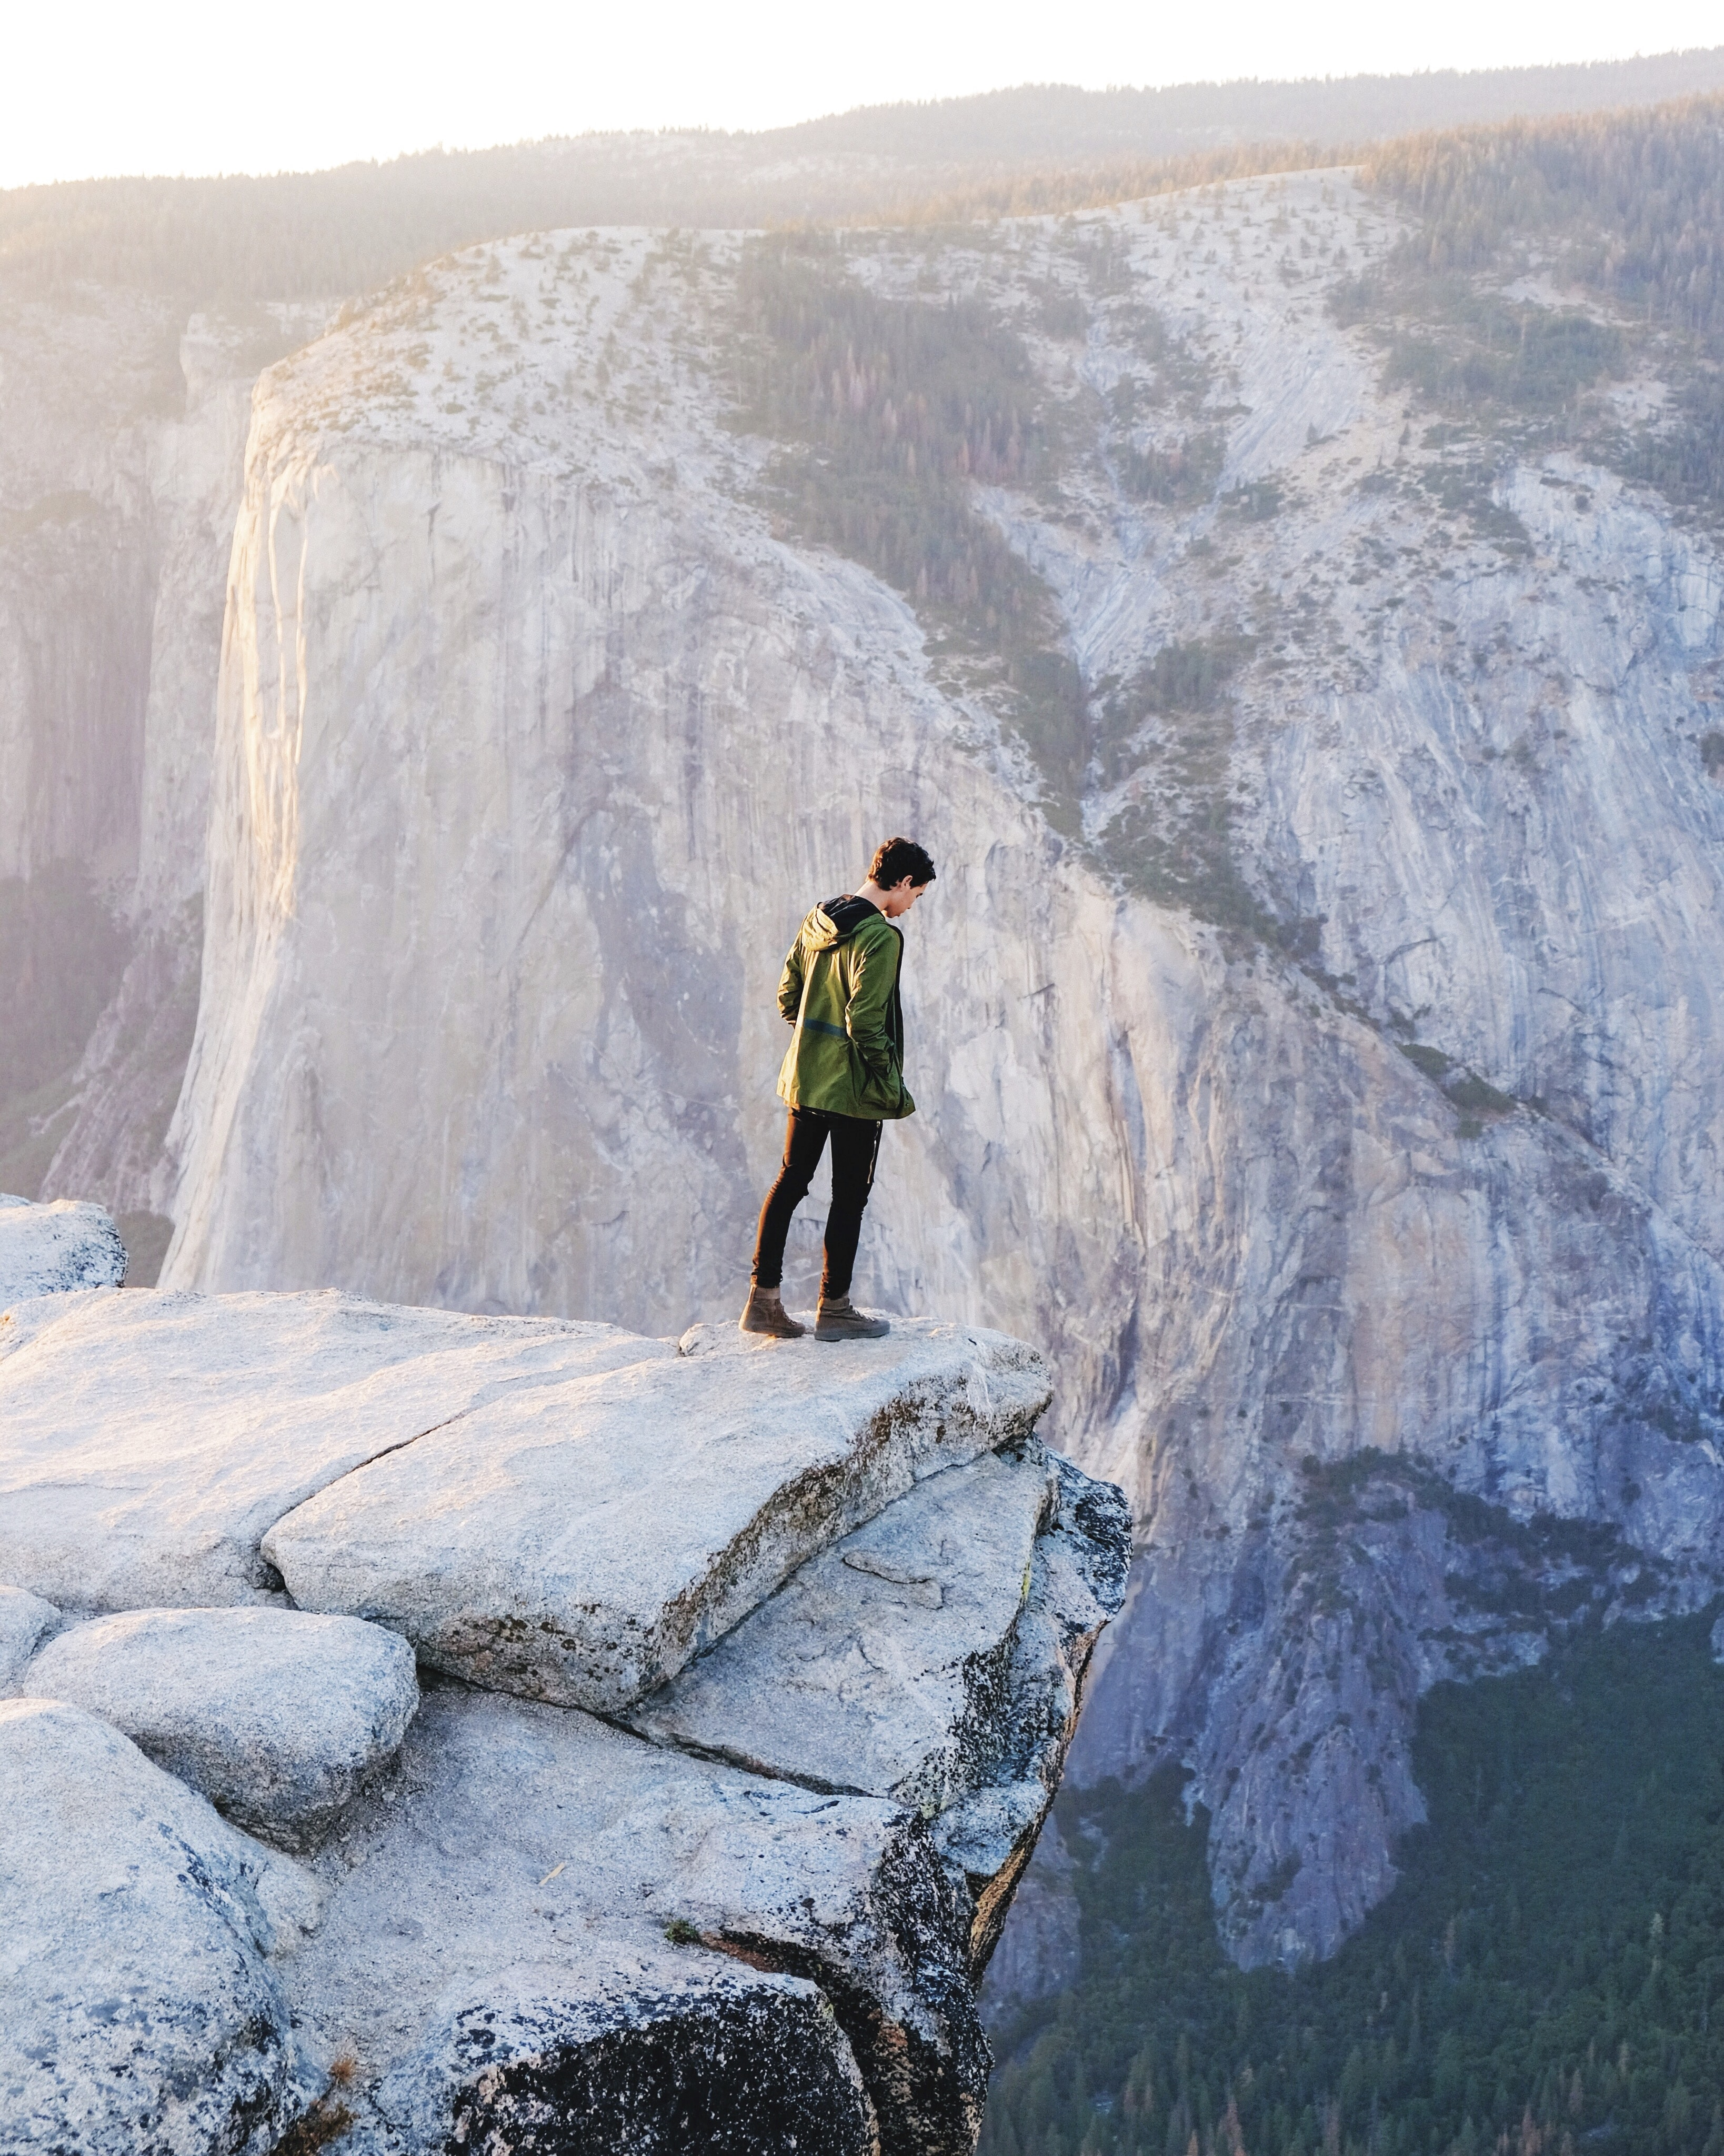 A man wearing black pants and a green jacket leaning over the edge of a cliff in Yosemite Valley